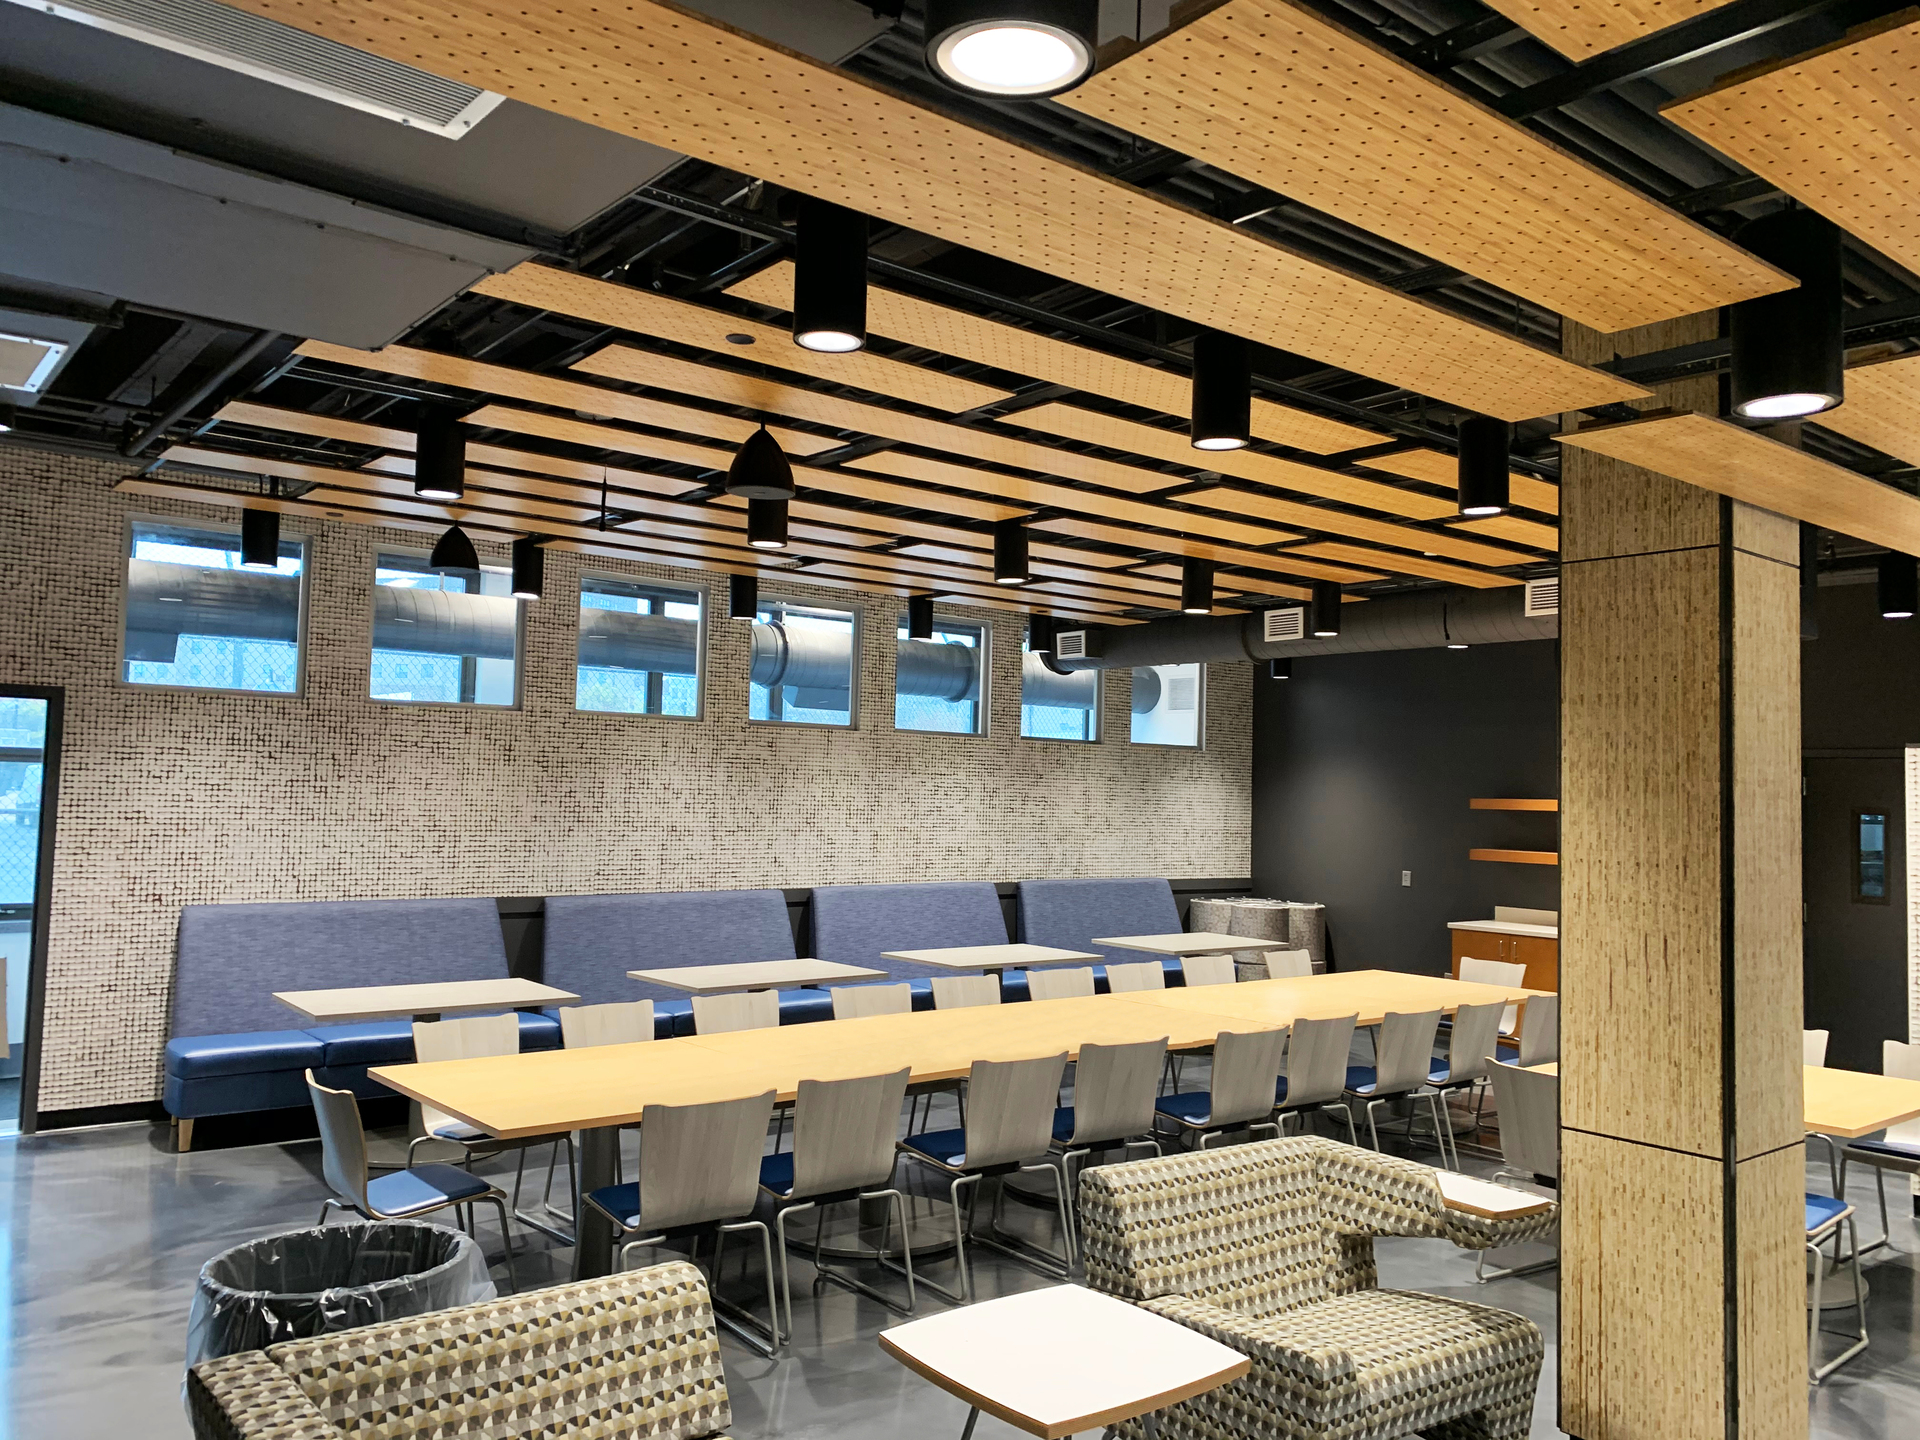 Newark Culinary School, located in Newark, New Jersey, highlights Lamboo® Surface™ - Perforated Acoustic Panel throughout the final design of the school.